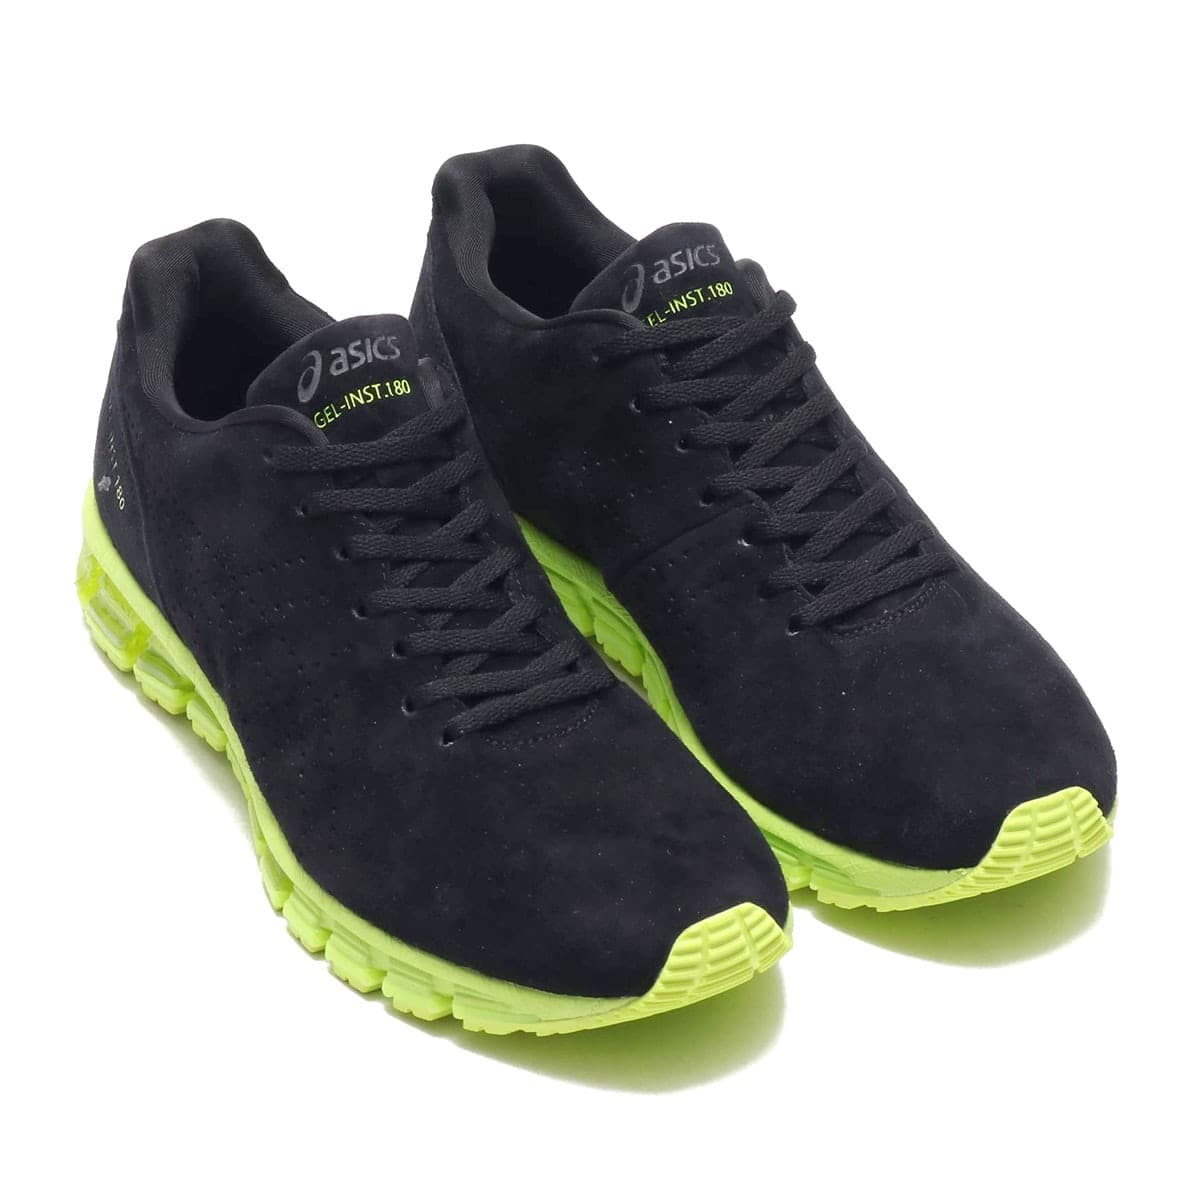 asics GEL-INST.180 NEON PACK  BLACK/NNG_photo_large